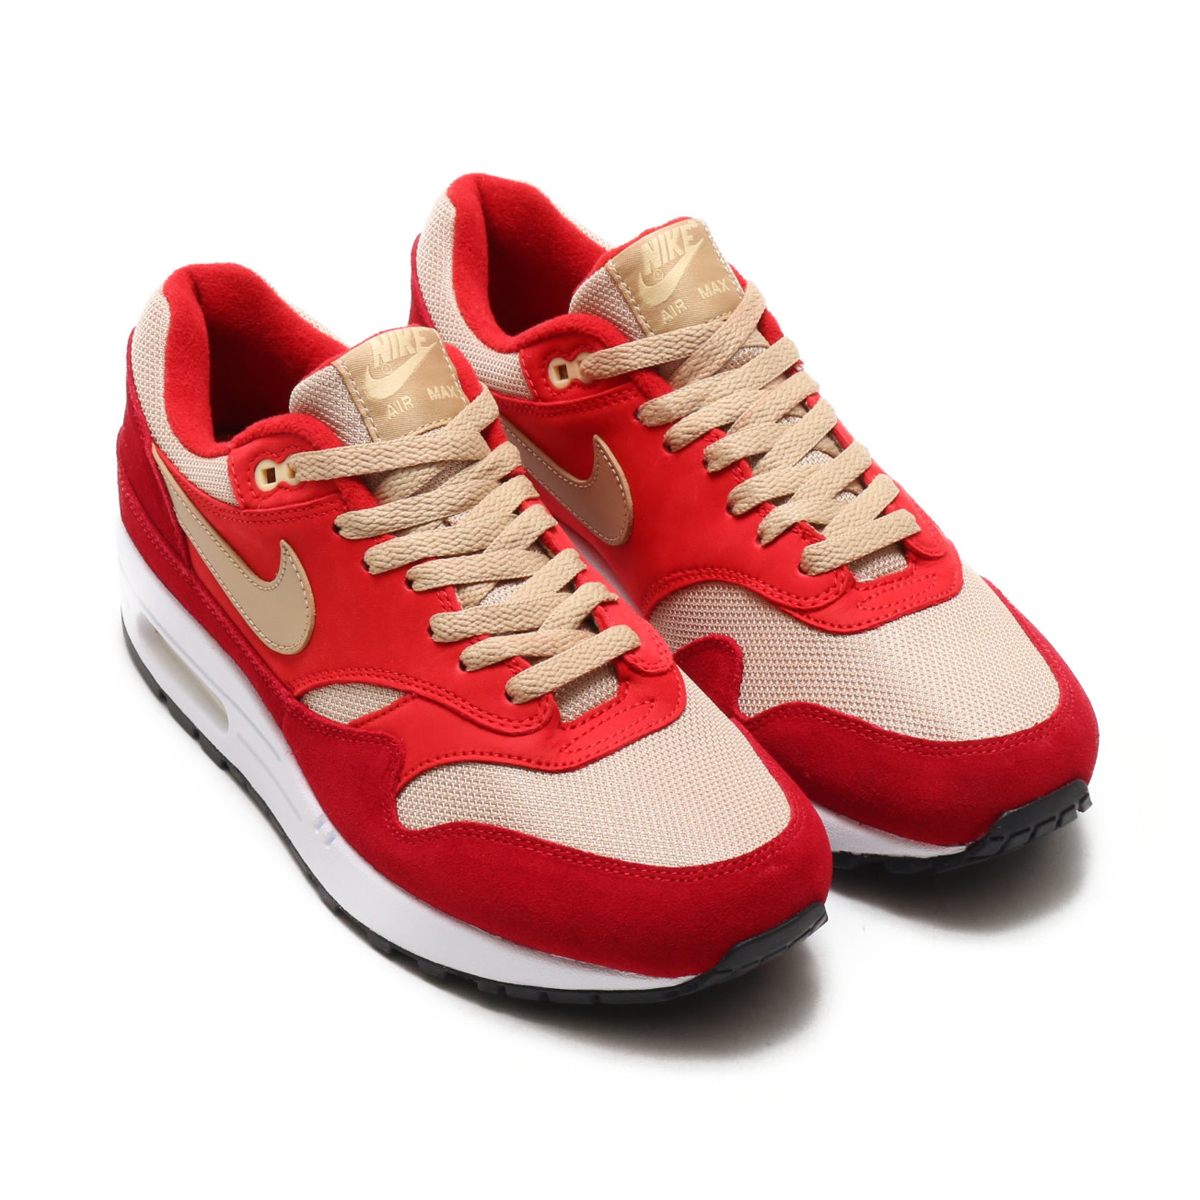 nike air max 1 premium retro red curry nz